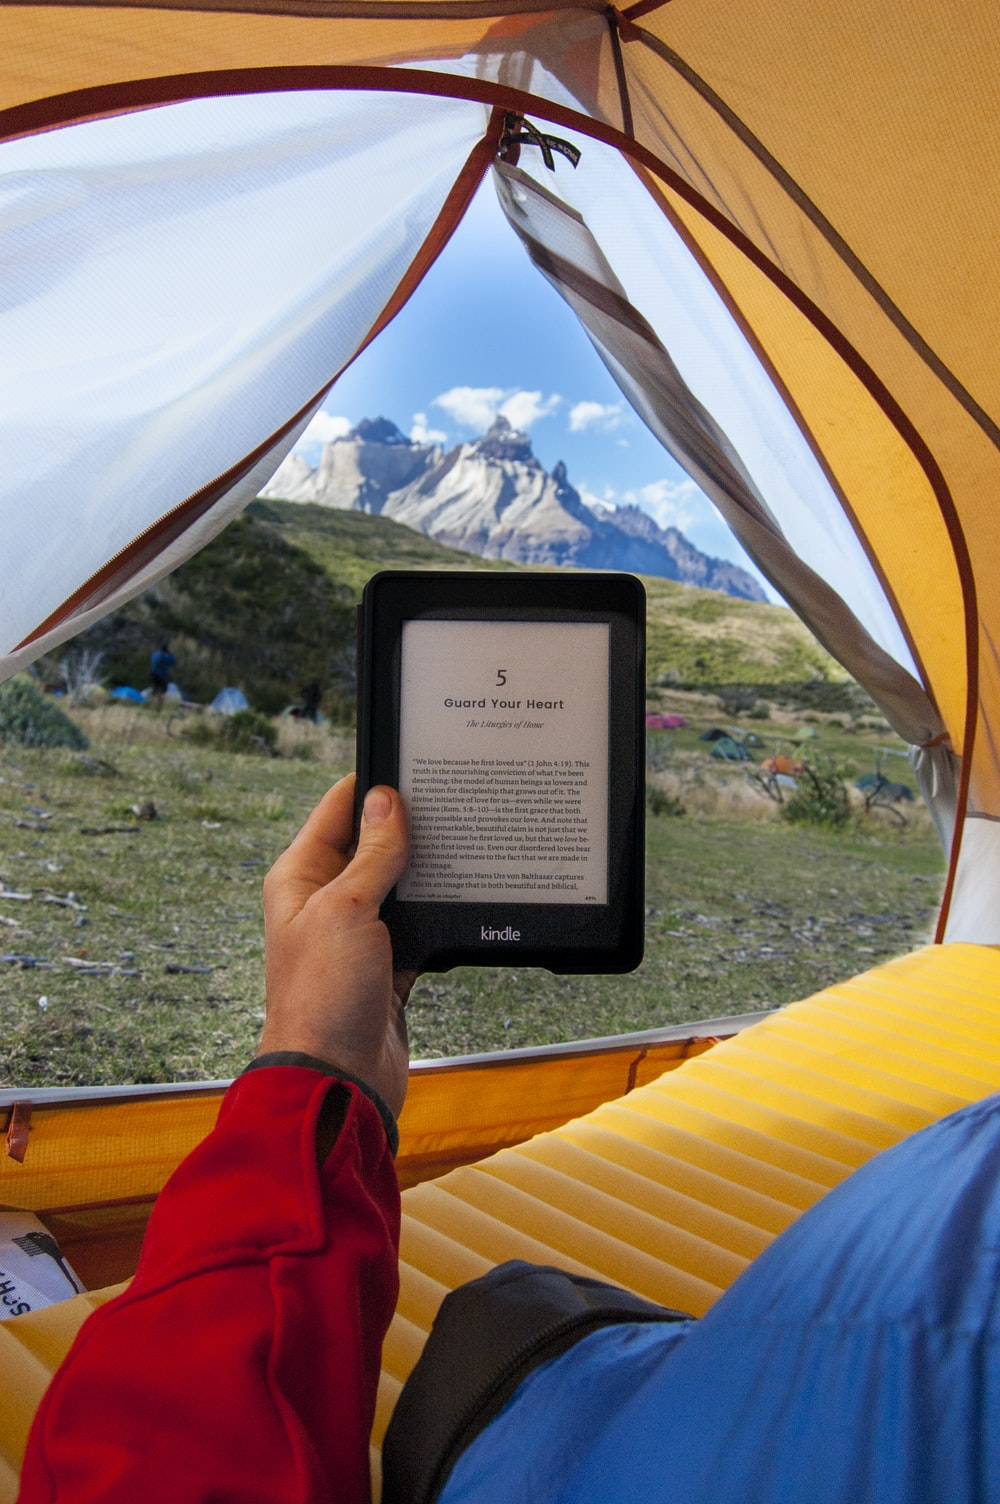 person holding black Amazon Kindle E-Book reader inside tent at daytime